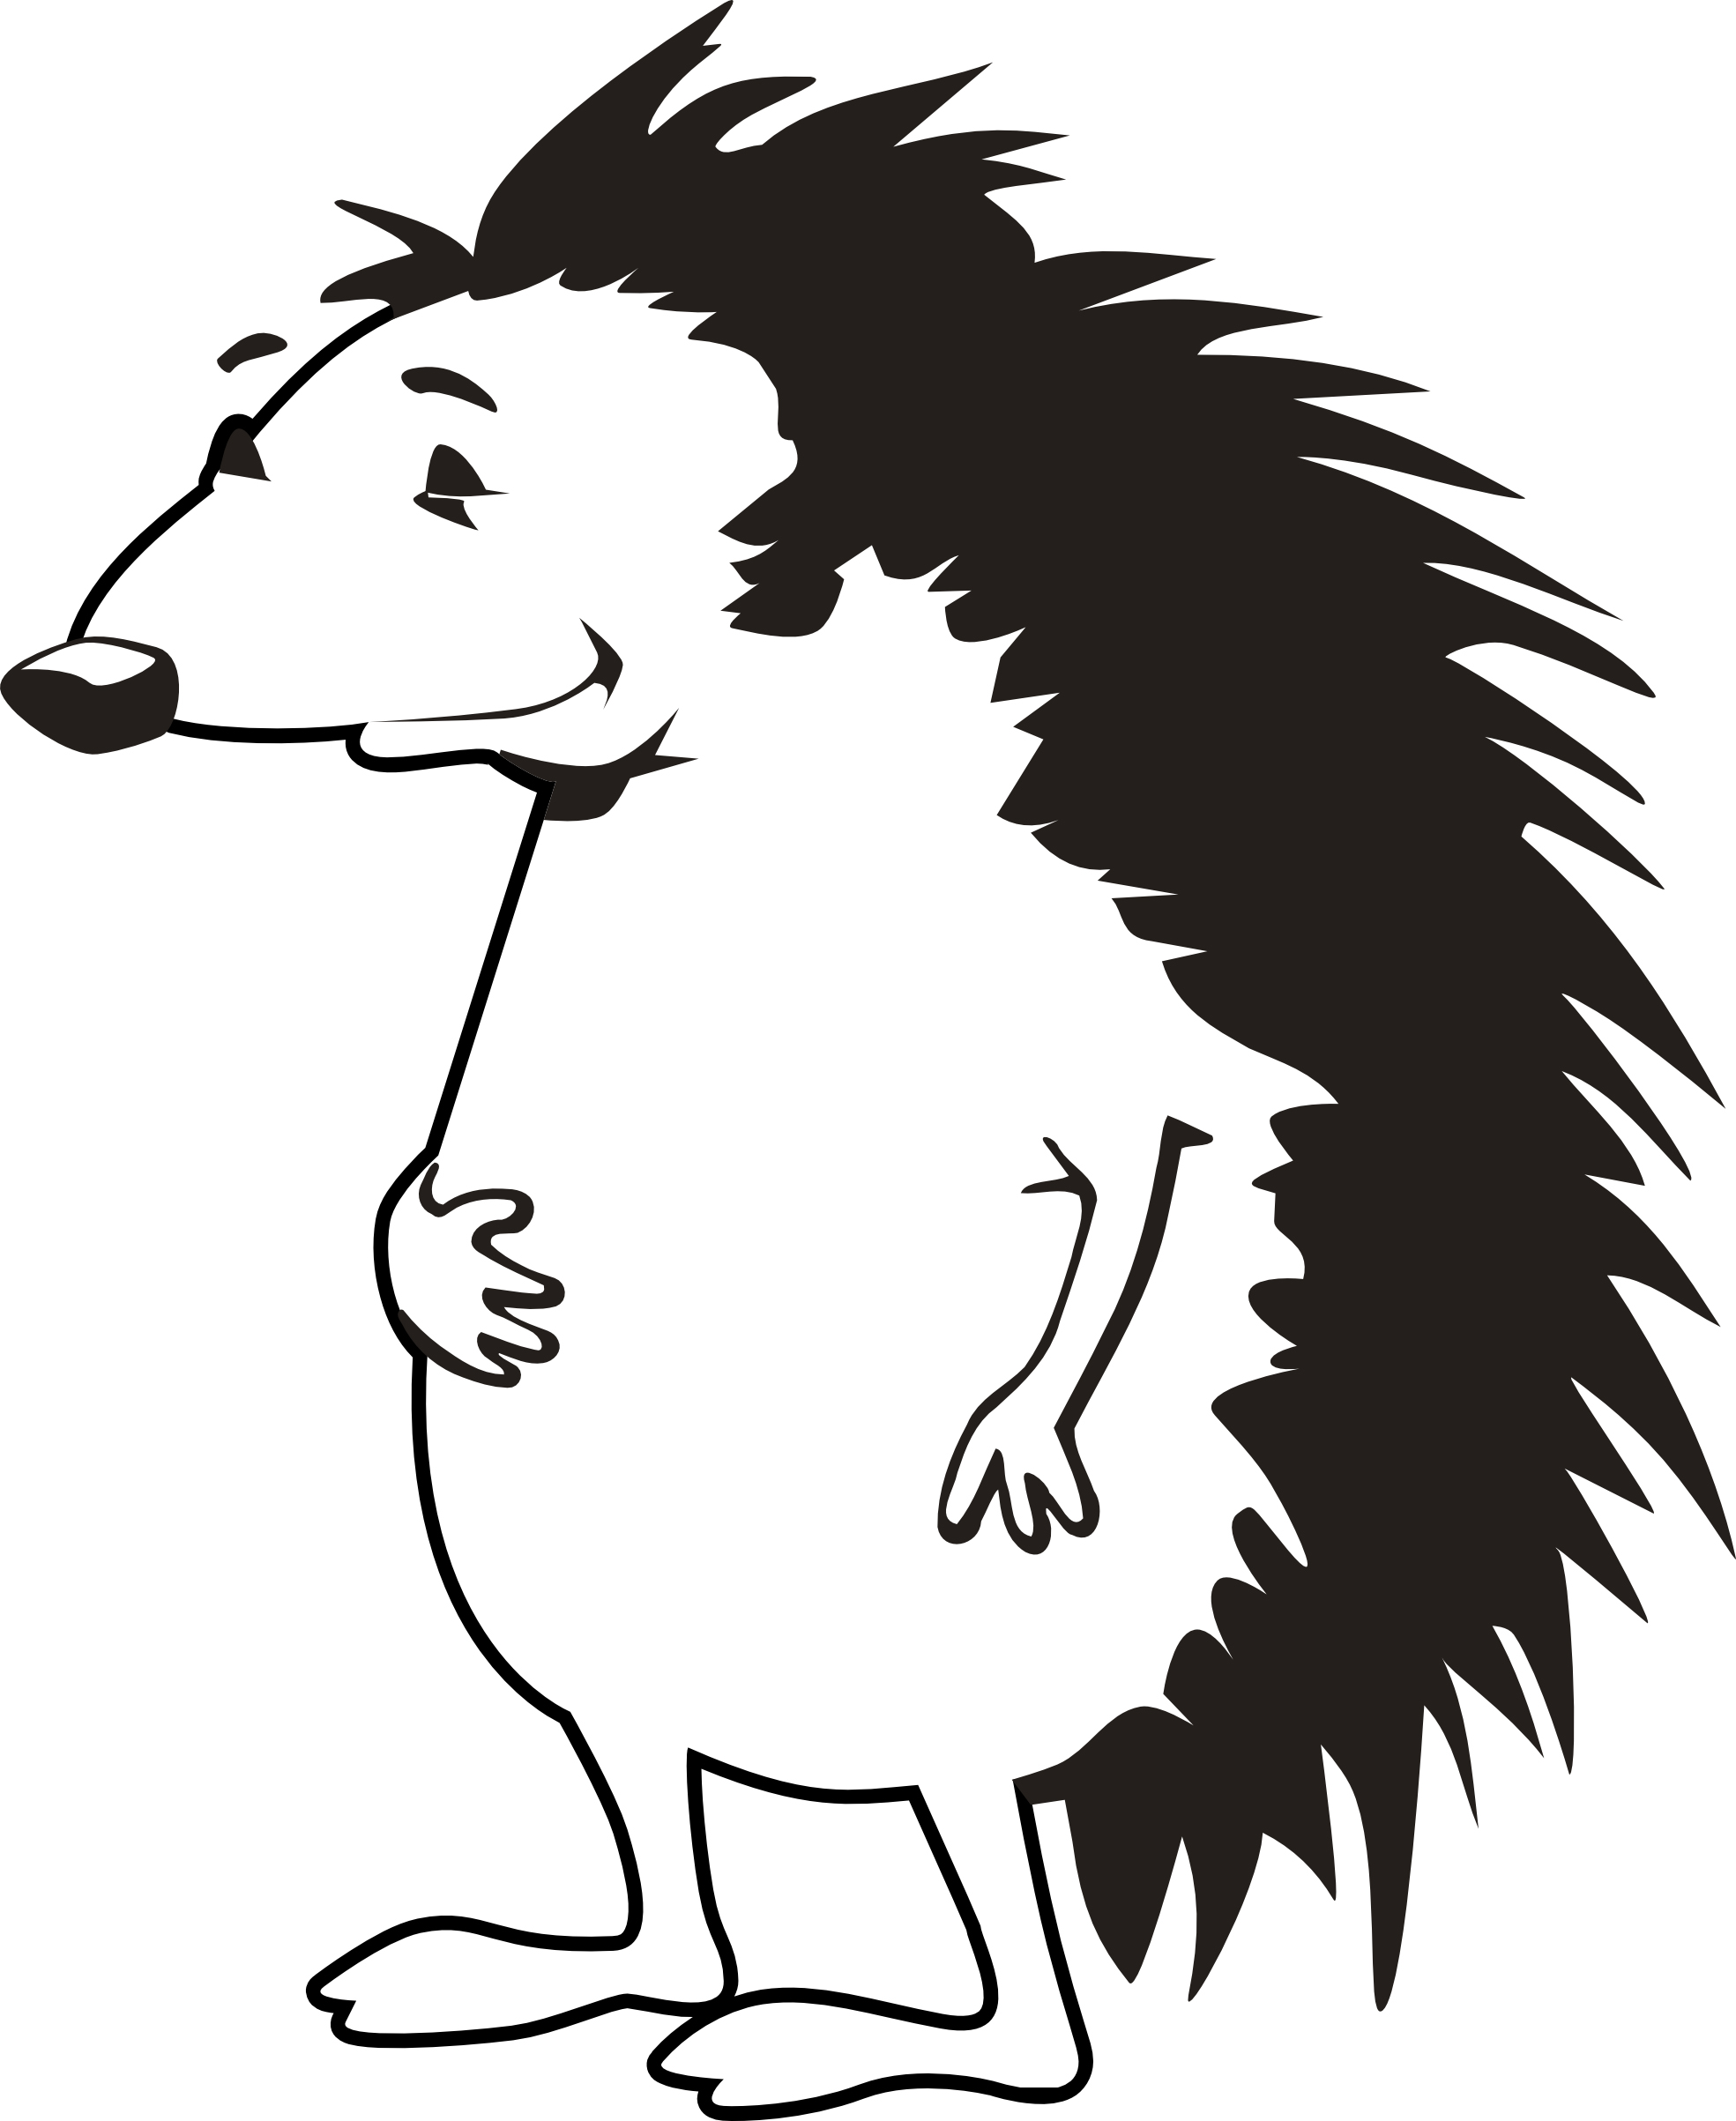 Porcupine Coloring Page Printable